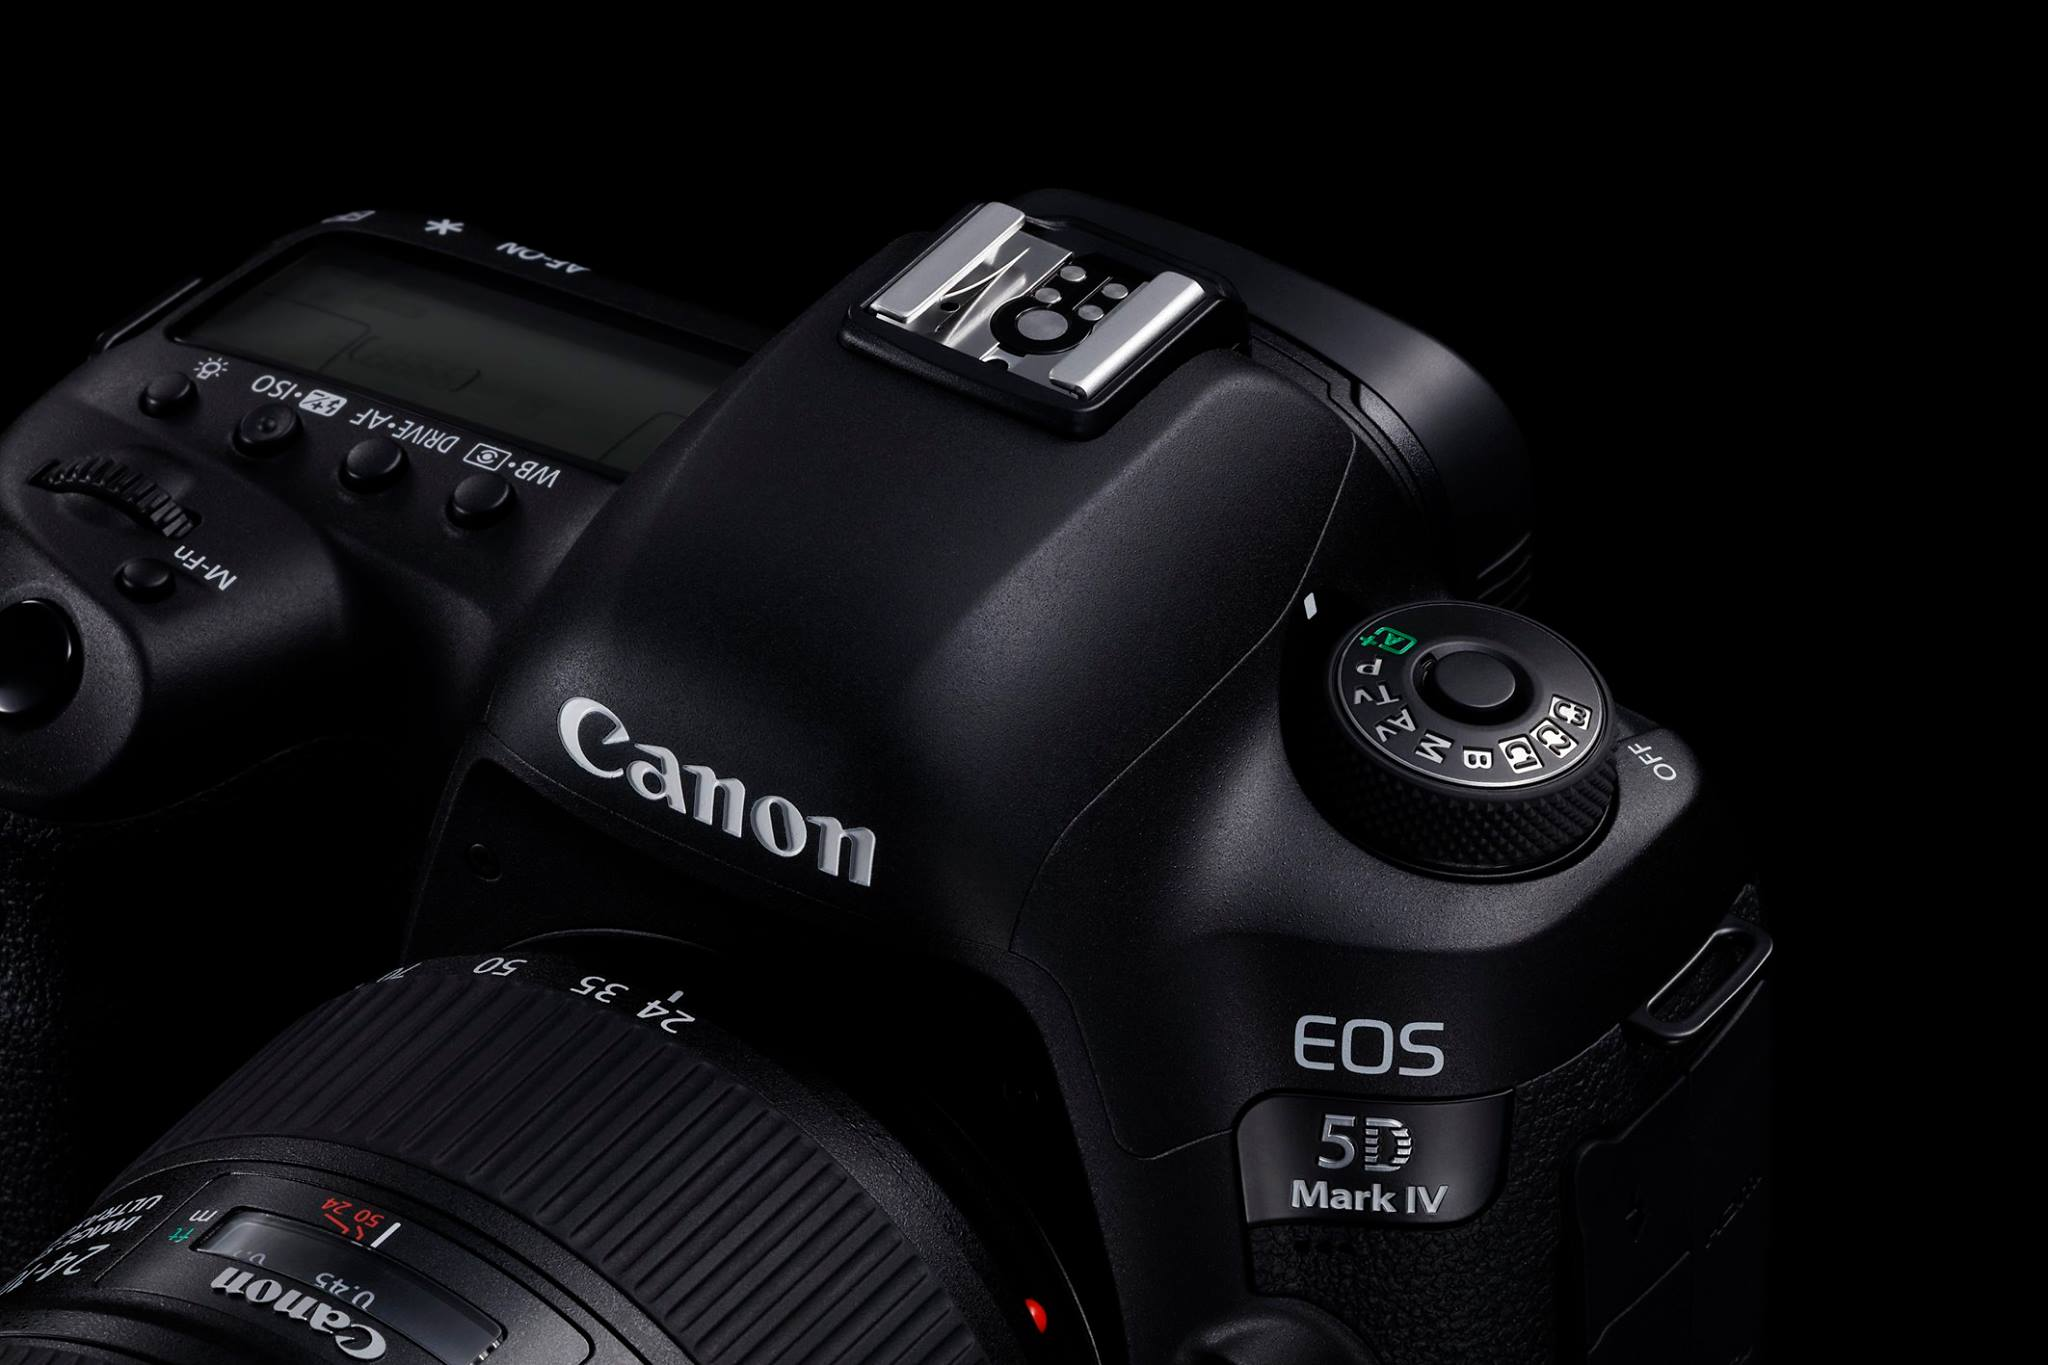 canon eos 7d mark ii instruction manual or user guide download pdf rh digitalphotographylive com canon 5d mark iii user guide pdf canon 5d mark iii user guide pdf